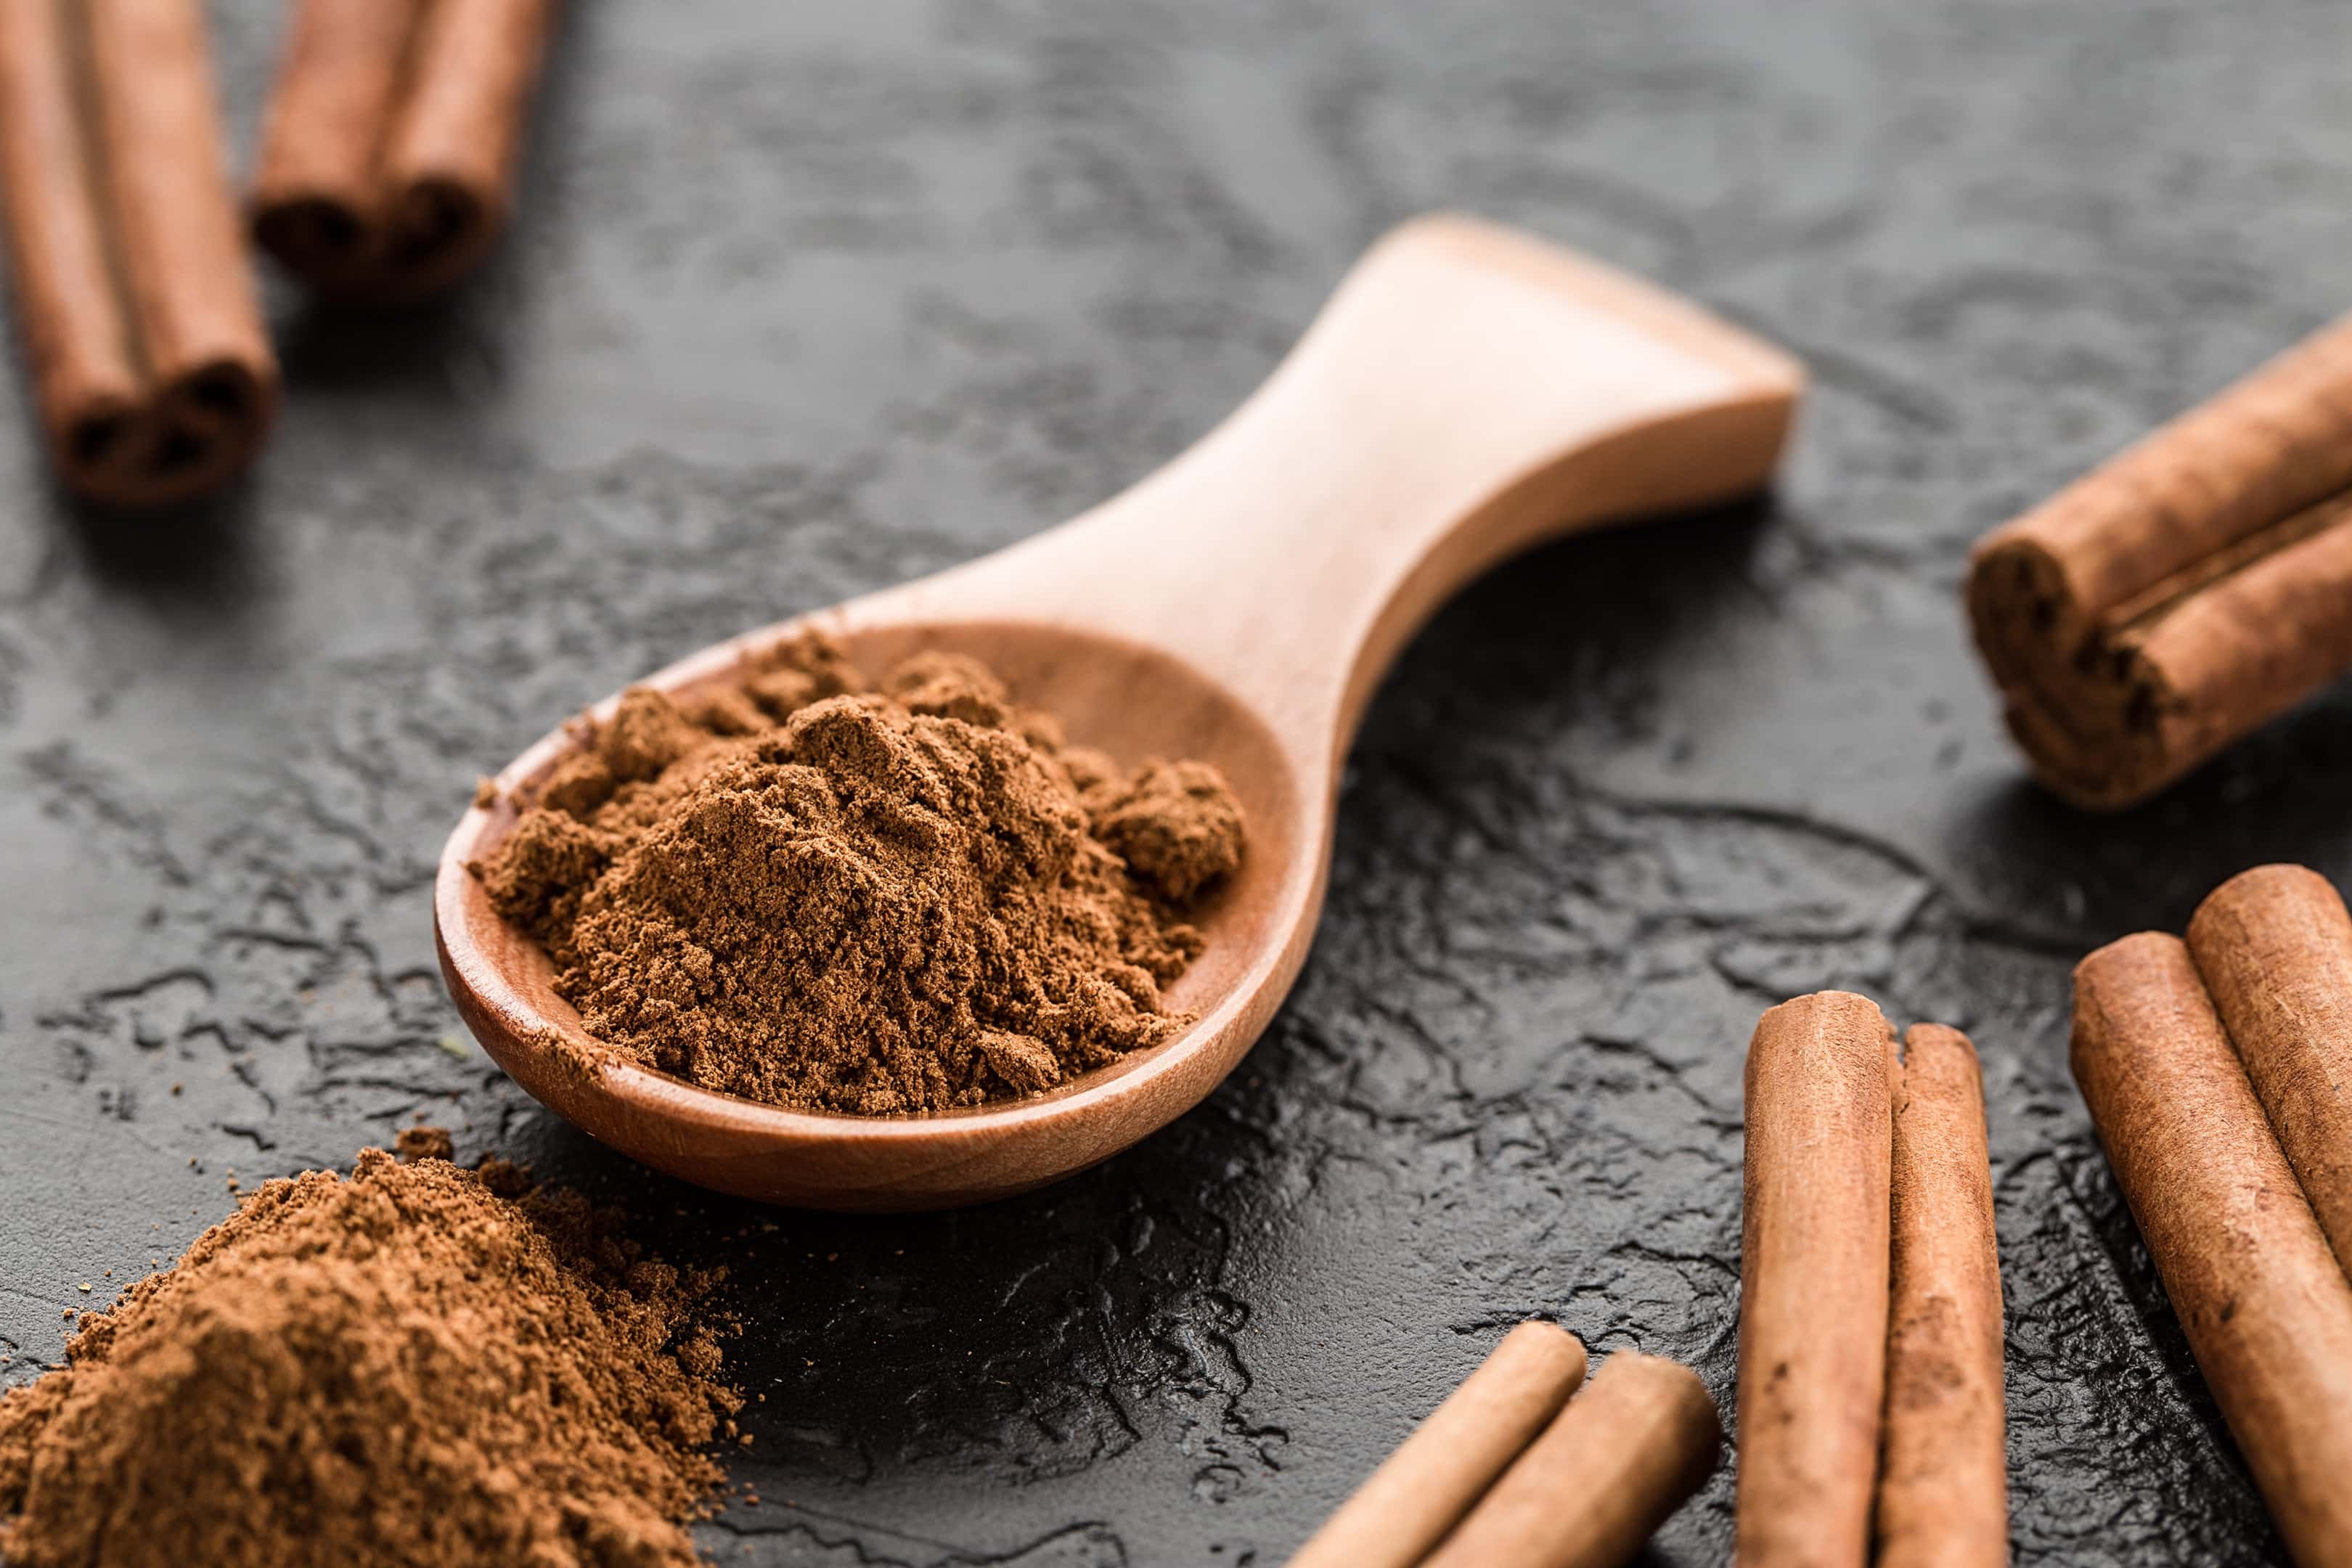 Ground cinnamon powder in wooden spoon